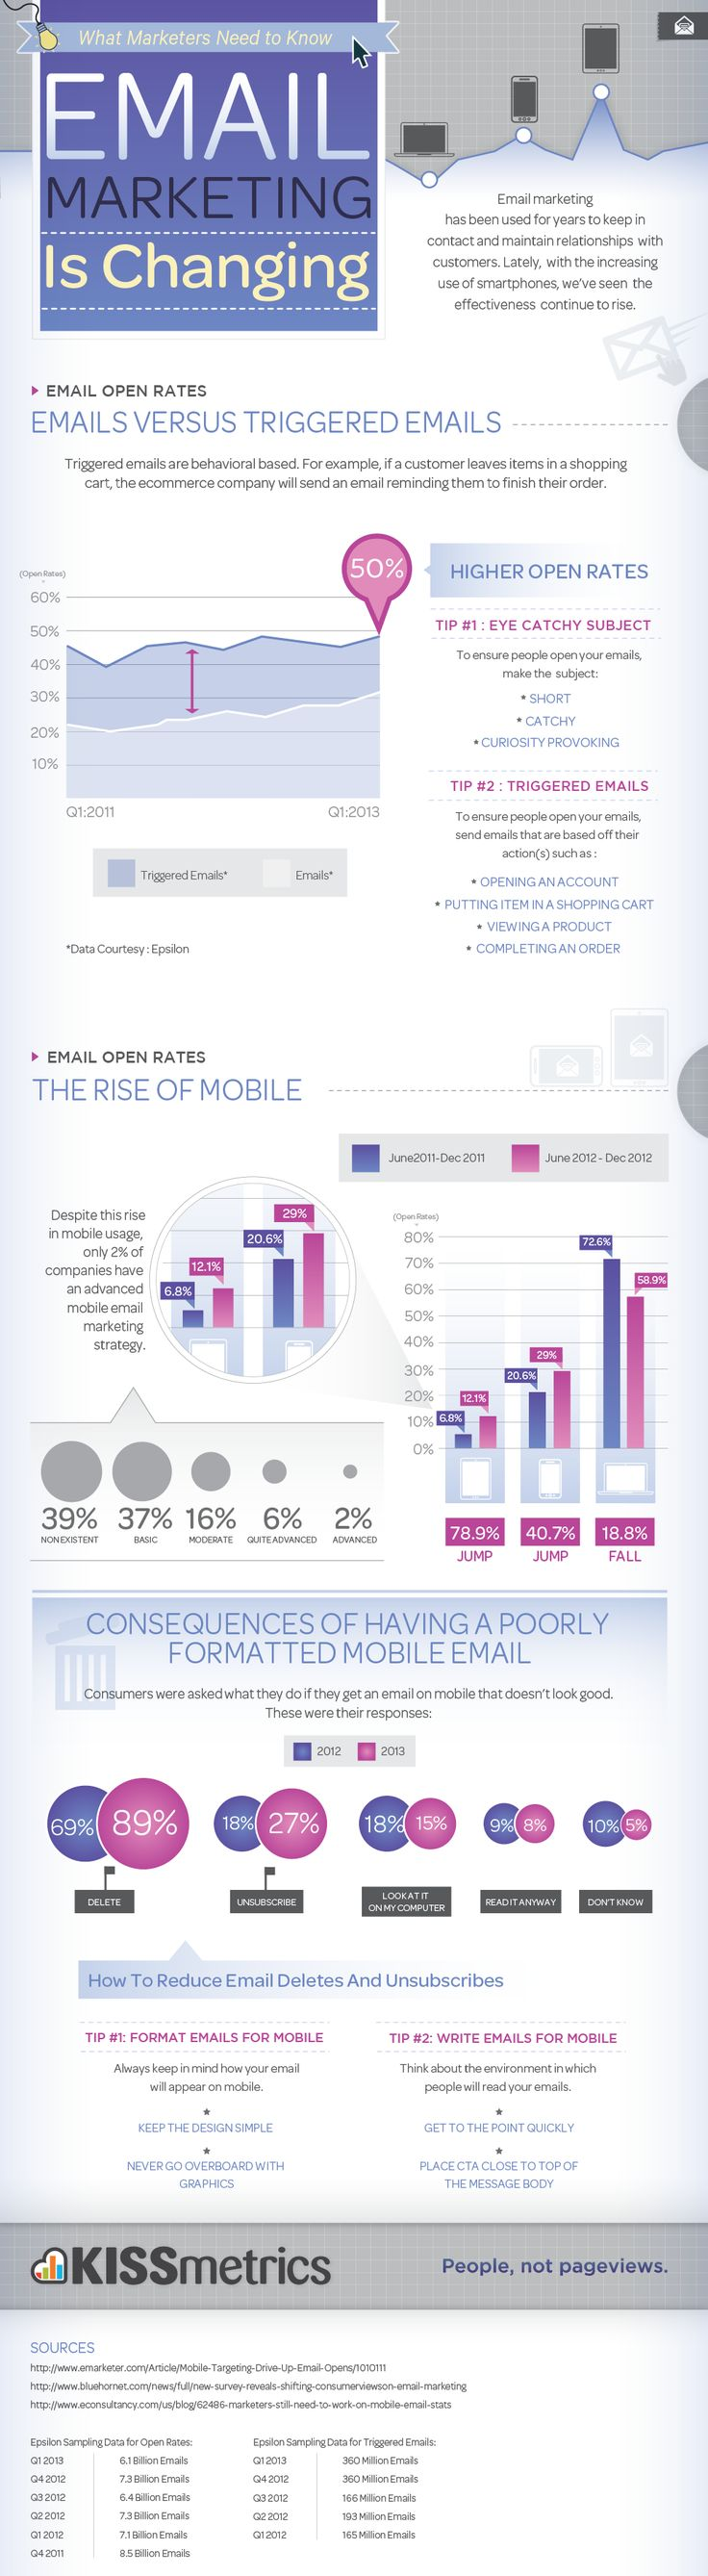 Infographic: Email Marketing is Changing – The Rise of Mobile and Triggered Emails